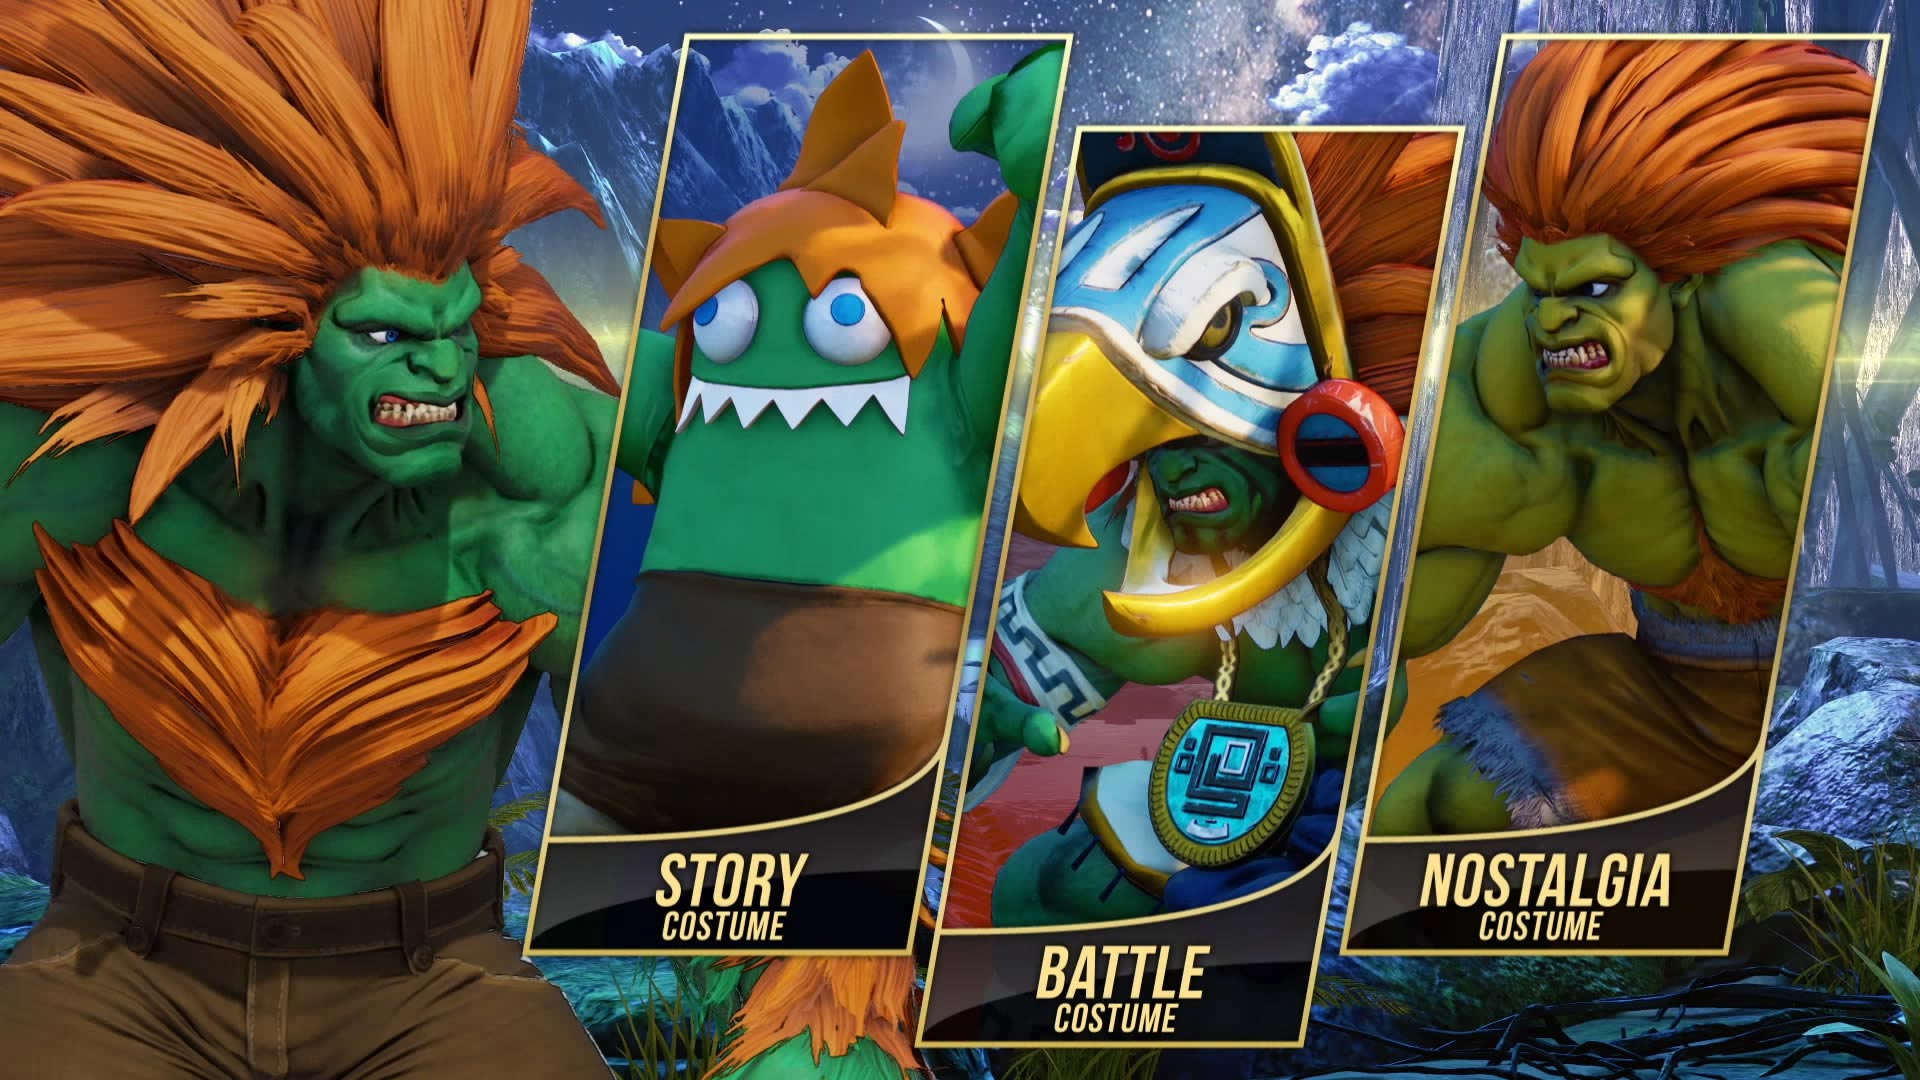 Blanka in Street Fighter 5: Arcade Edition 11 out of 11 image gallery